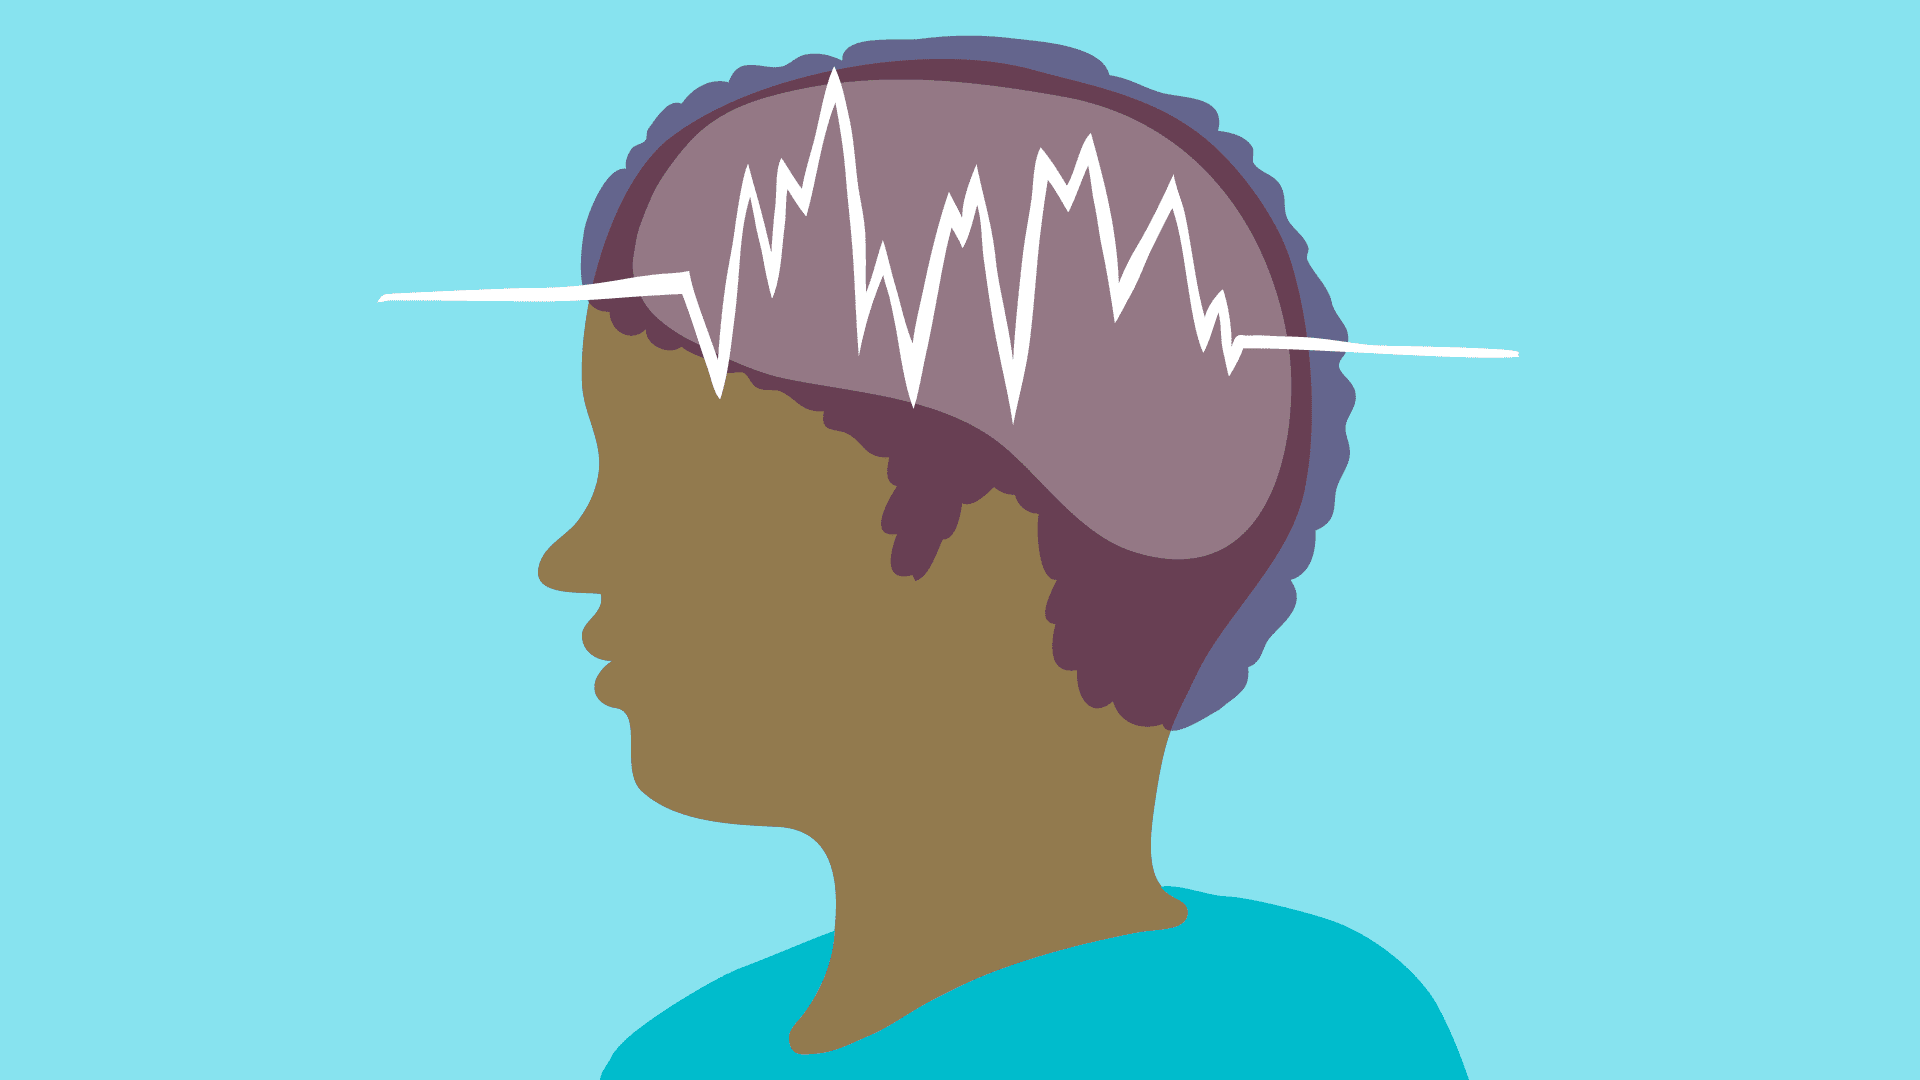 Epilepsy Articles Symptoms Treatment And More